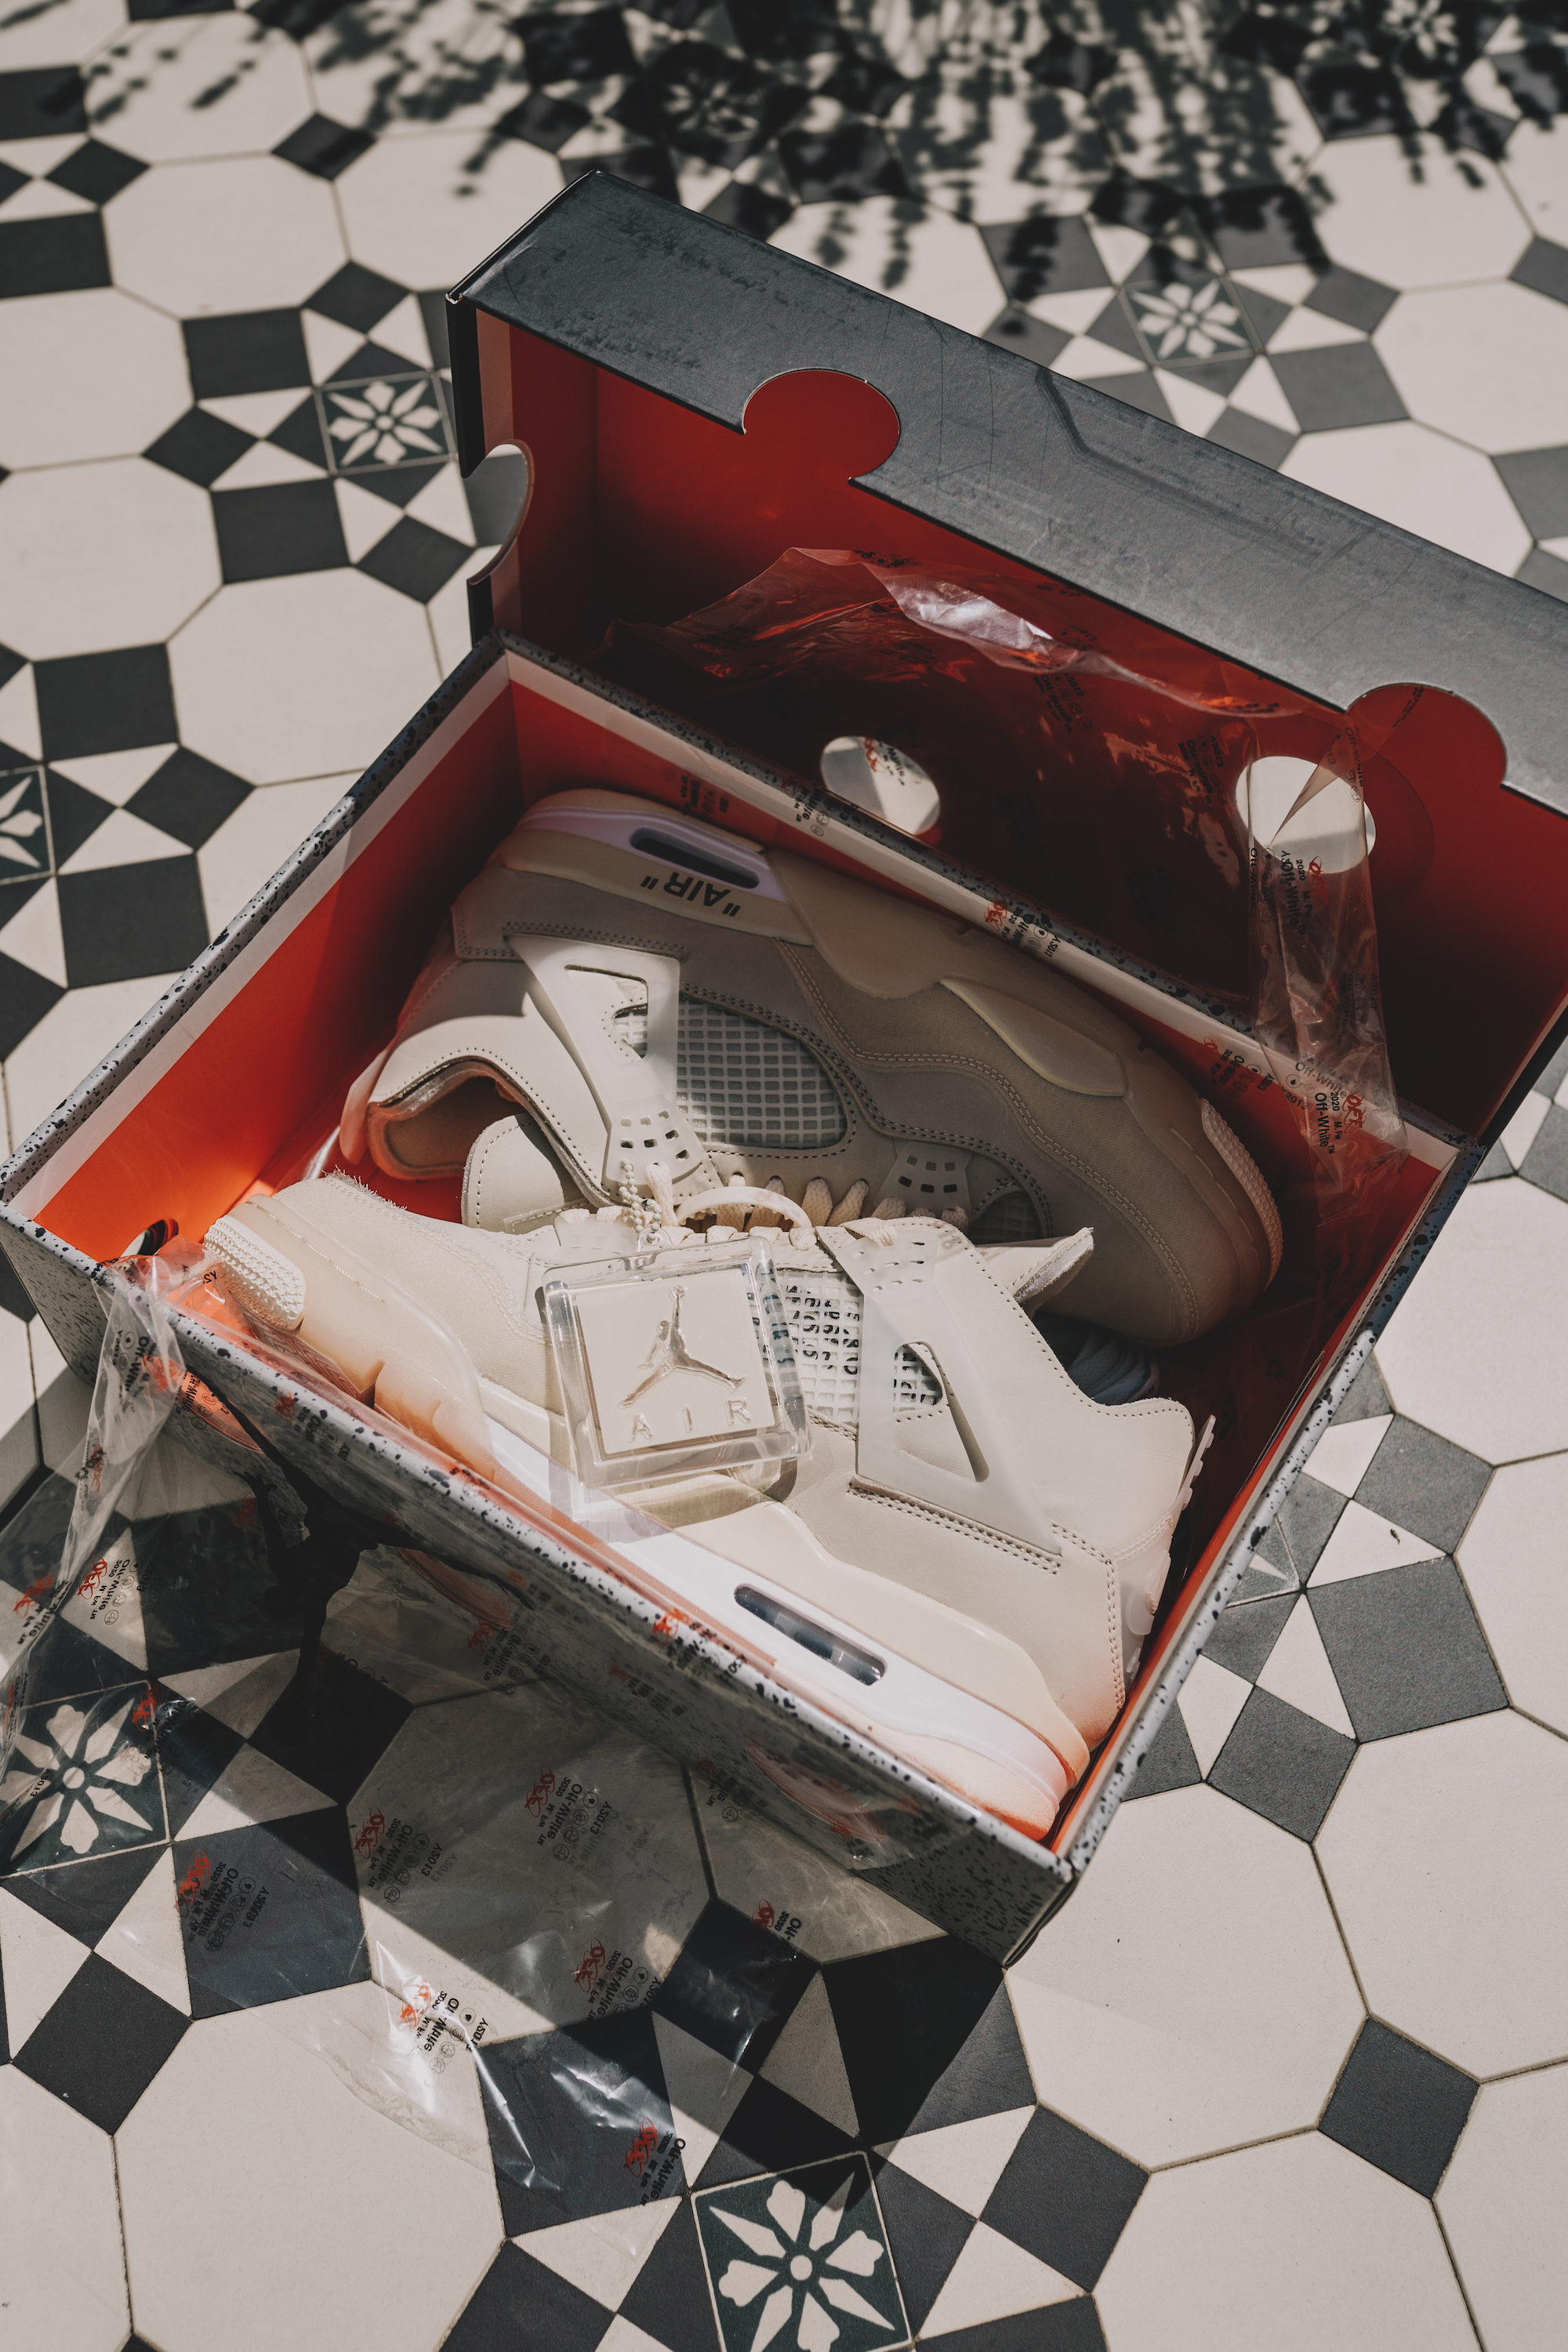 Burlington Arcade x Kick Game Jordans box